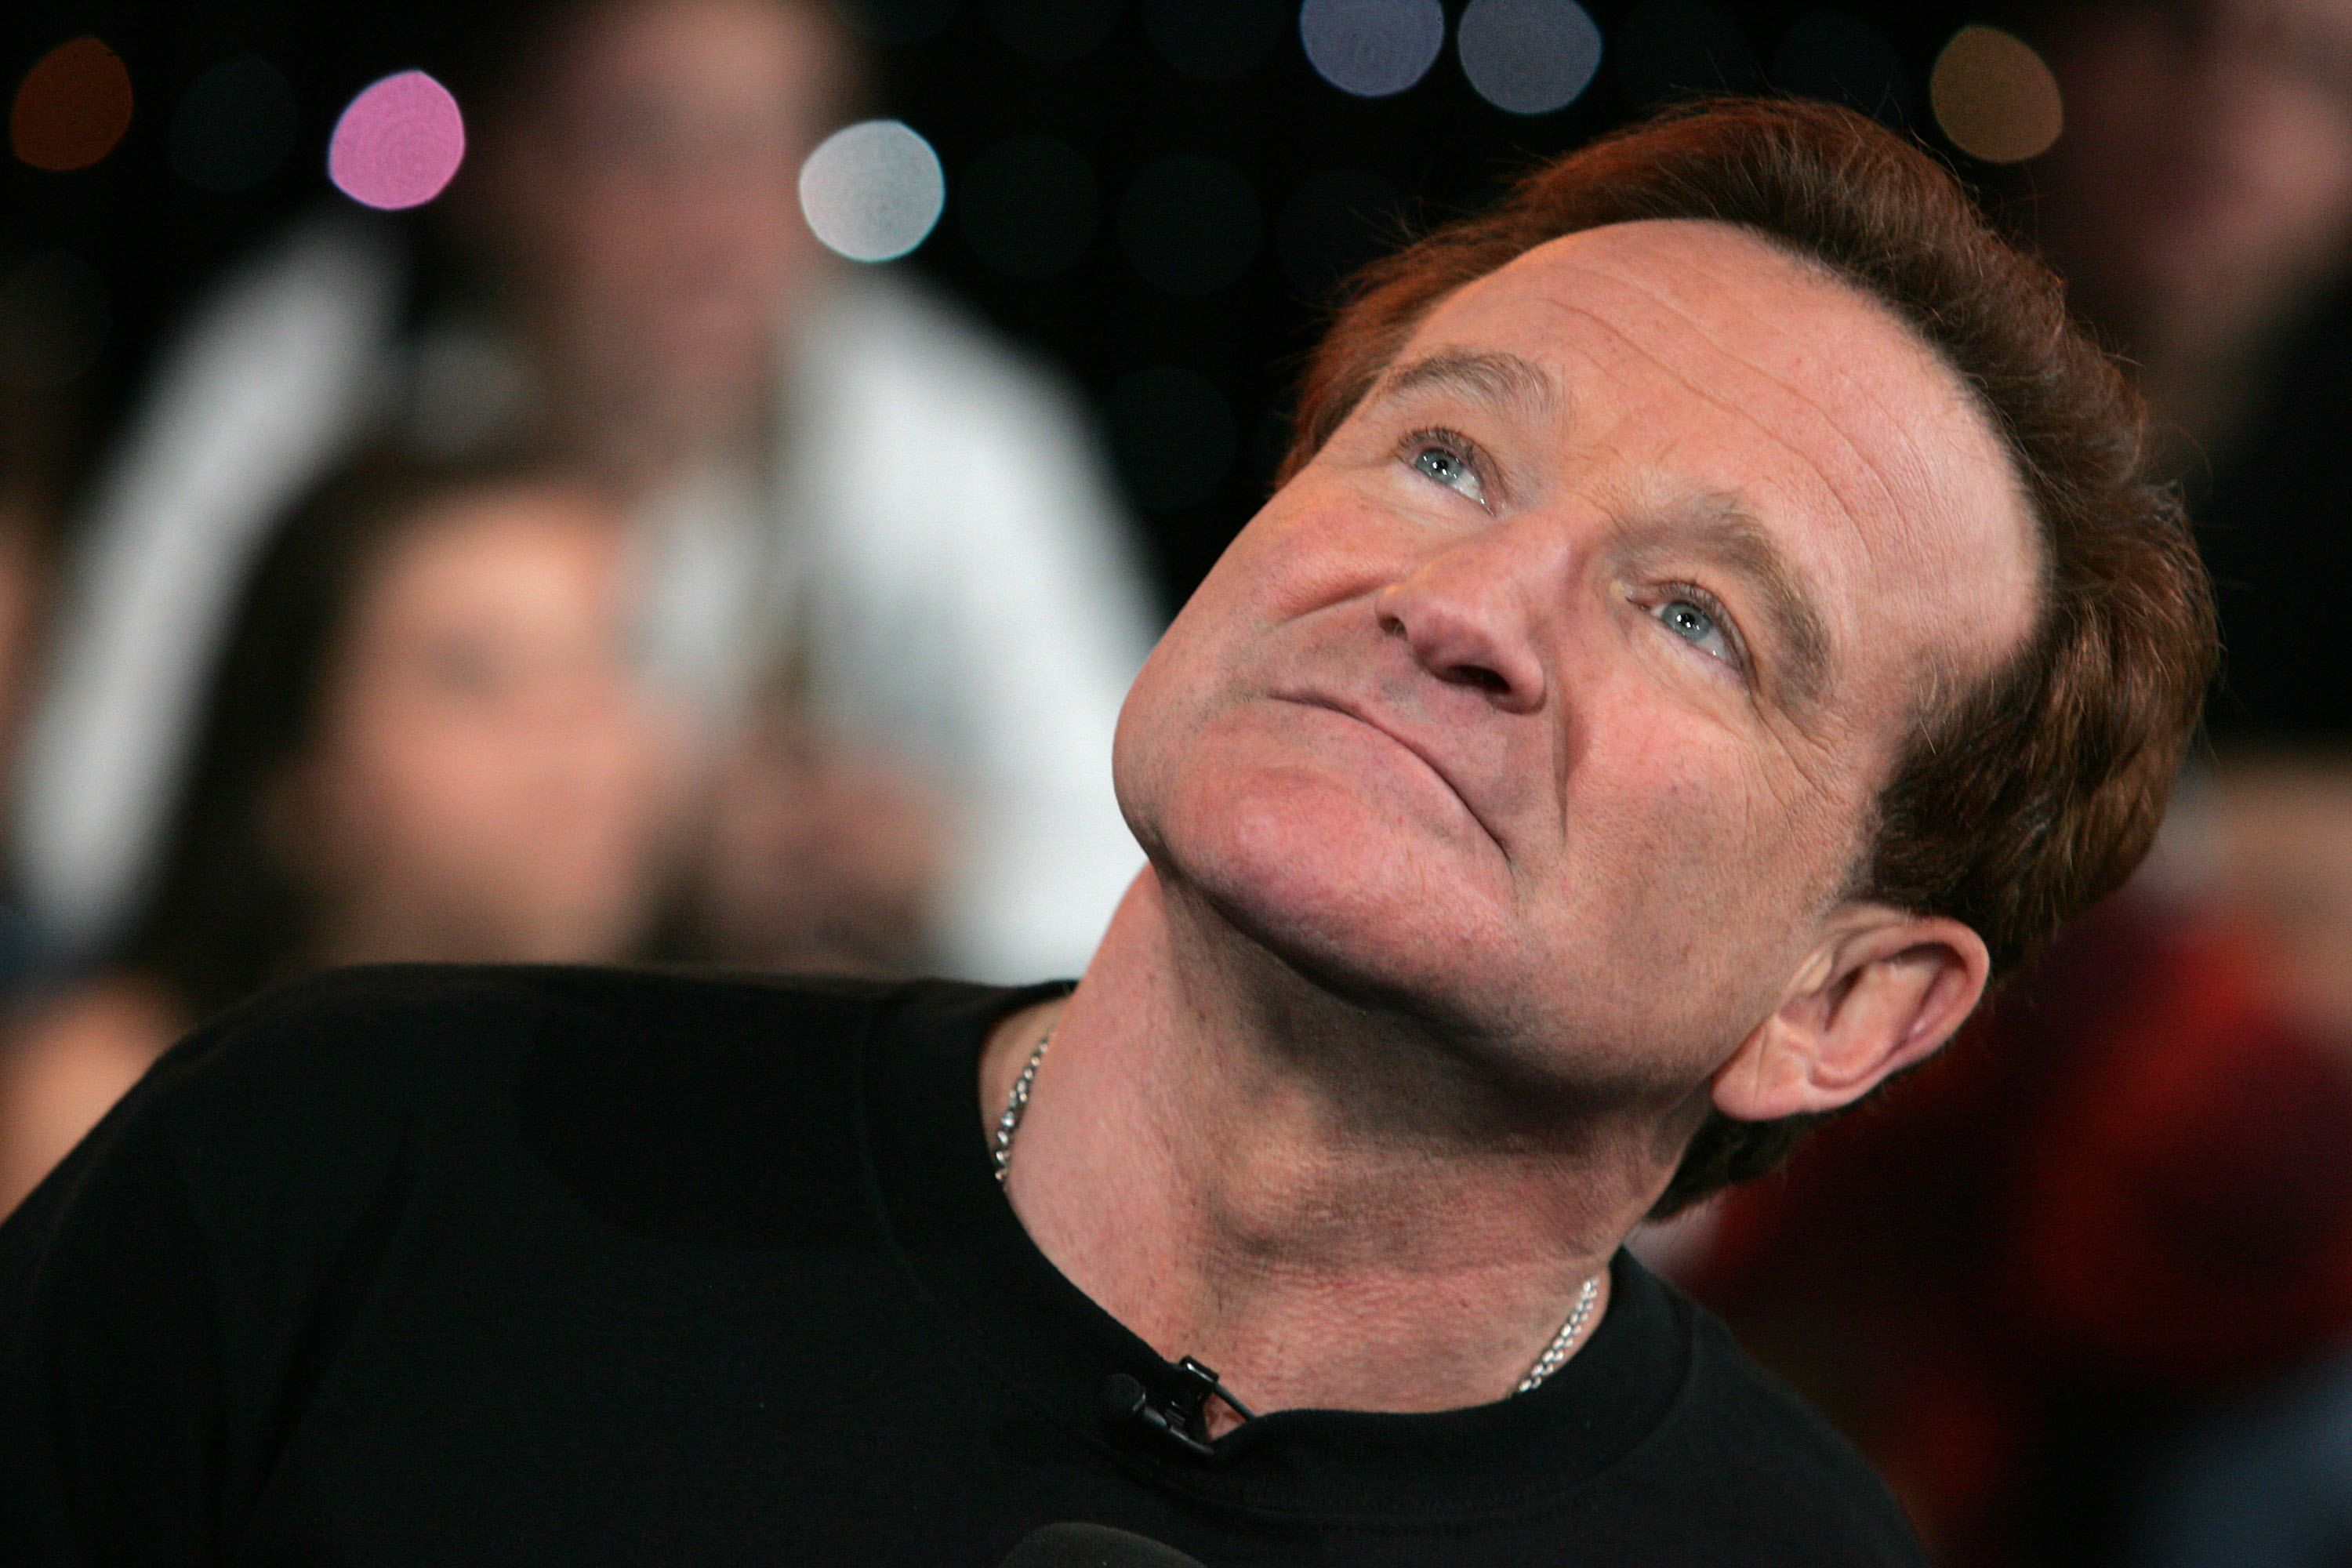 Fans Fondly Remember Robin Williams on the 5th Anniversary of His Death